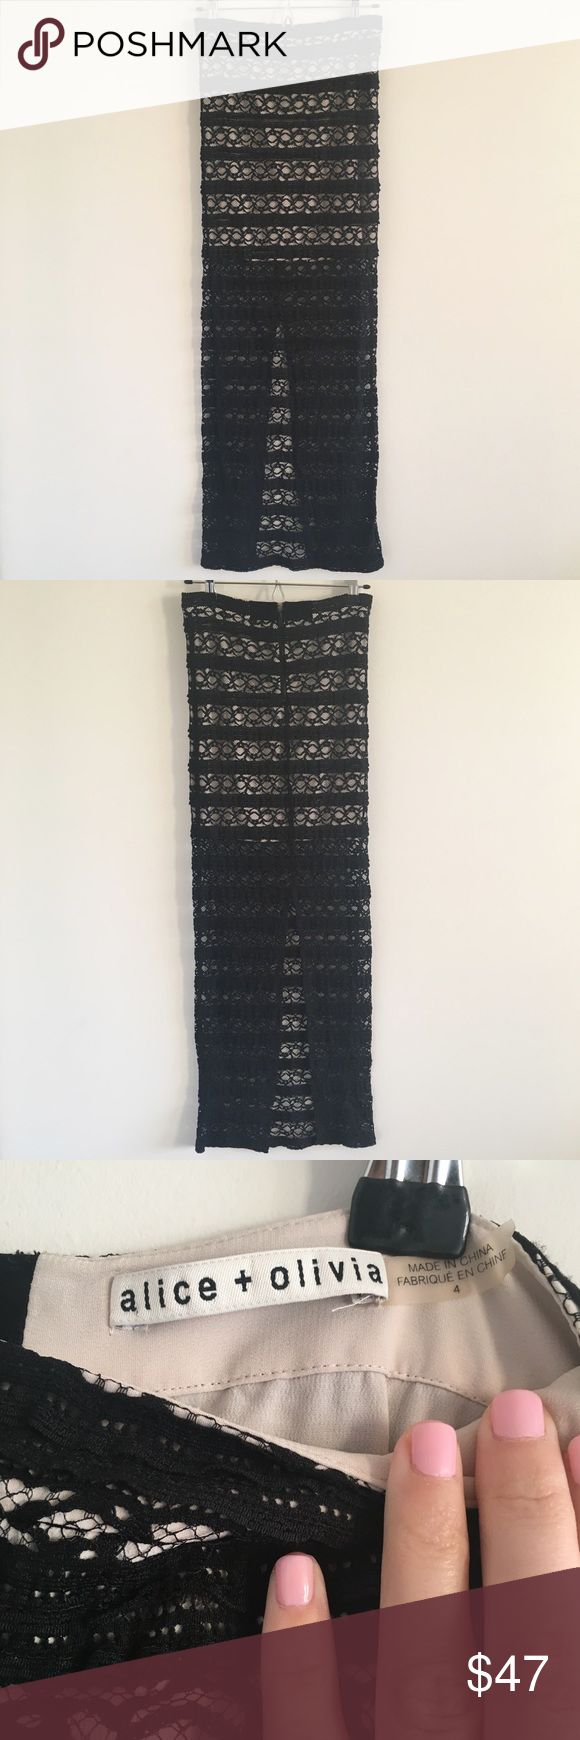 """🆕 Alice + Olivia Ettley Black Lace Maxi Skirt 4 Perfect for making a grand entrance.  Pair with a crop top or bodysuit 🖤  Stats (laying flat): Length: approx. 42.5"""" 